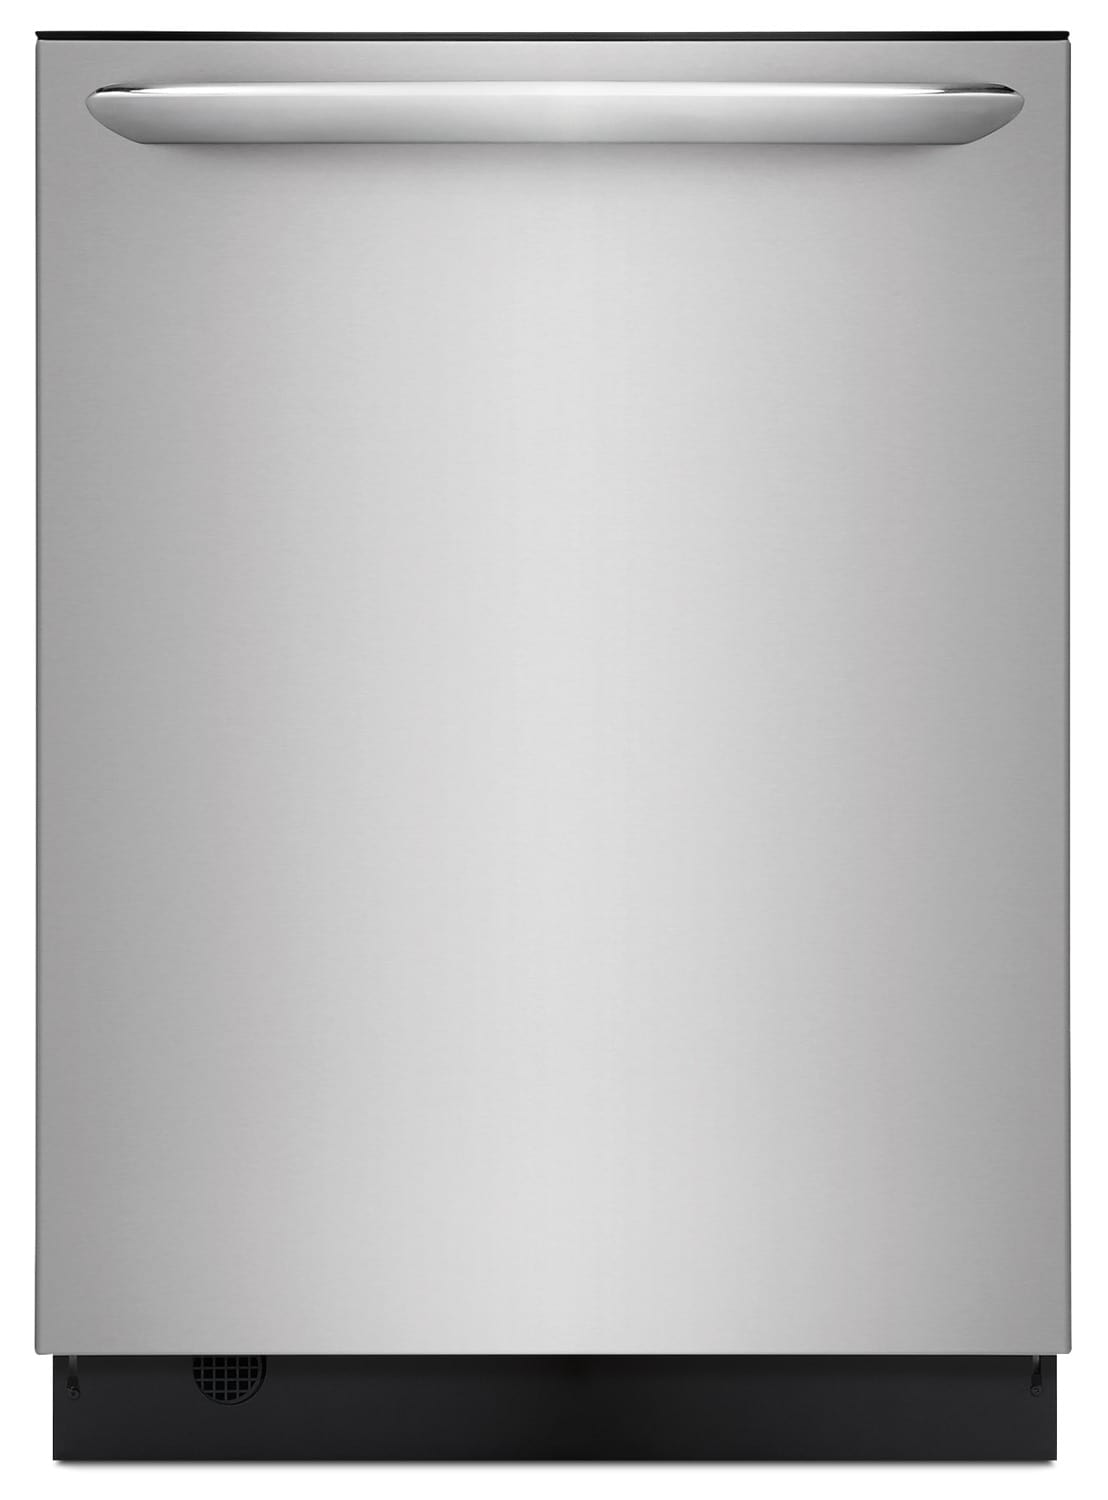 Frigidaire Gallery Built-In Tall-Tub Dishwasher with EvenDry™ System – FGID2476SF